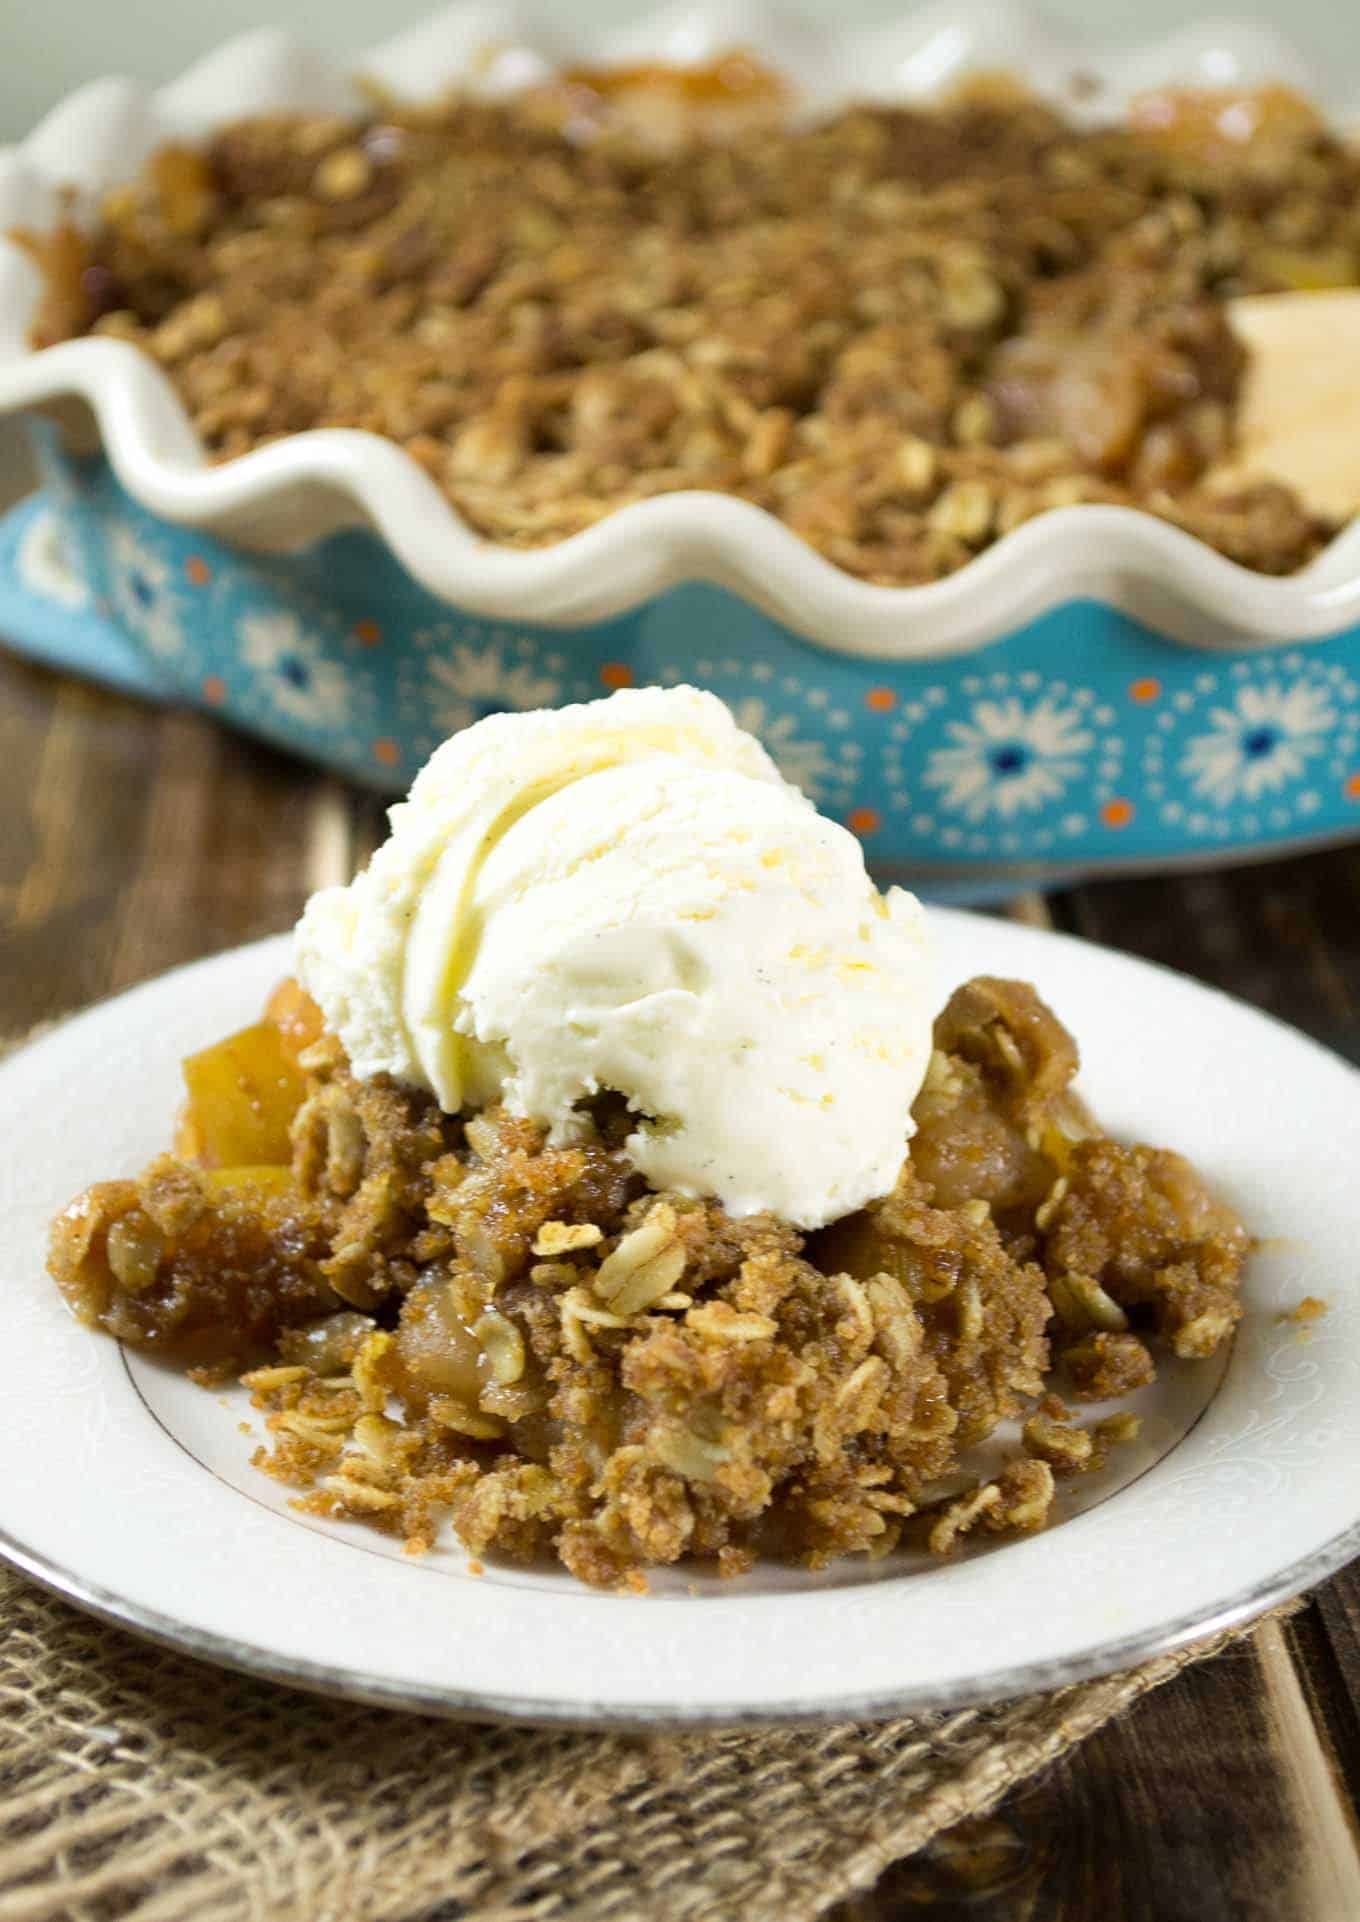 The BEST Vegan Apple Crisp Recipe - I can't get enough of this!